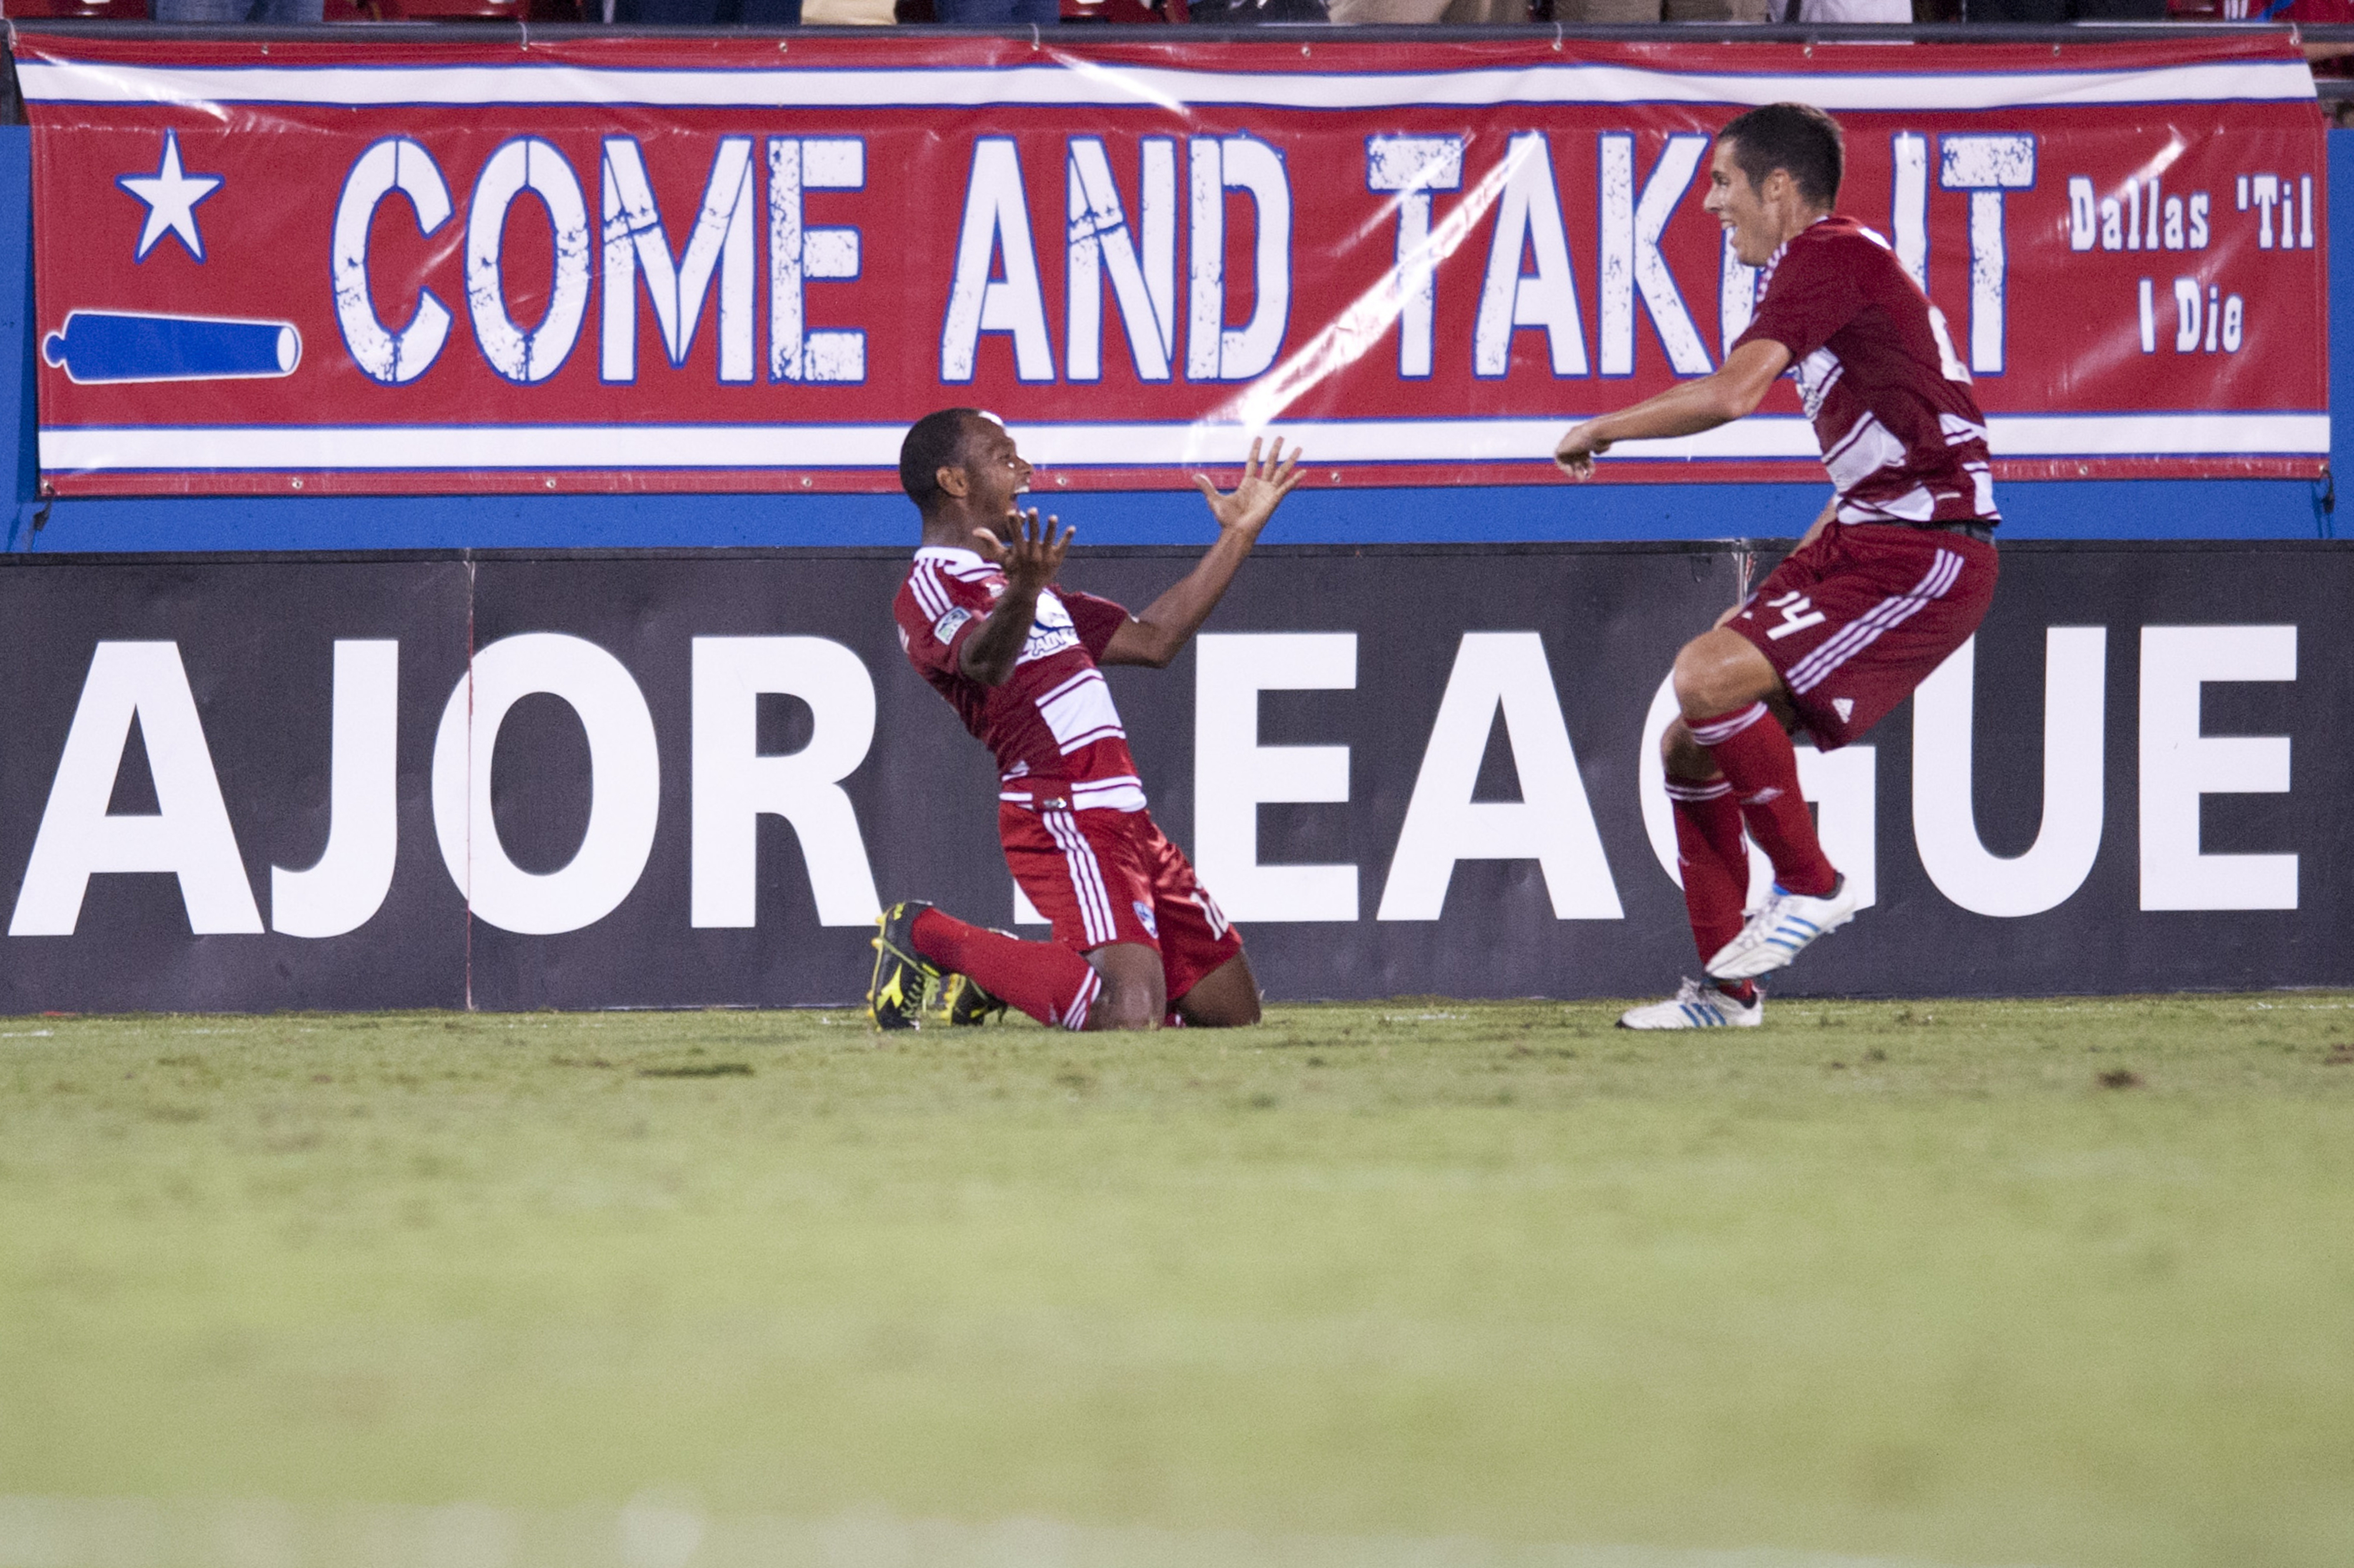 FRISCO, TX - SEPTEMBER 15:  Julian de Guzman #12 of FC Dallas celebrates the game winning goal with teammates against the Vancouver Whitecaps FC on September 15, 2012 at FC Dallas Stadium in Frisco, Texas.  (Photo by Cooper Neill/Getty Images)